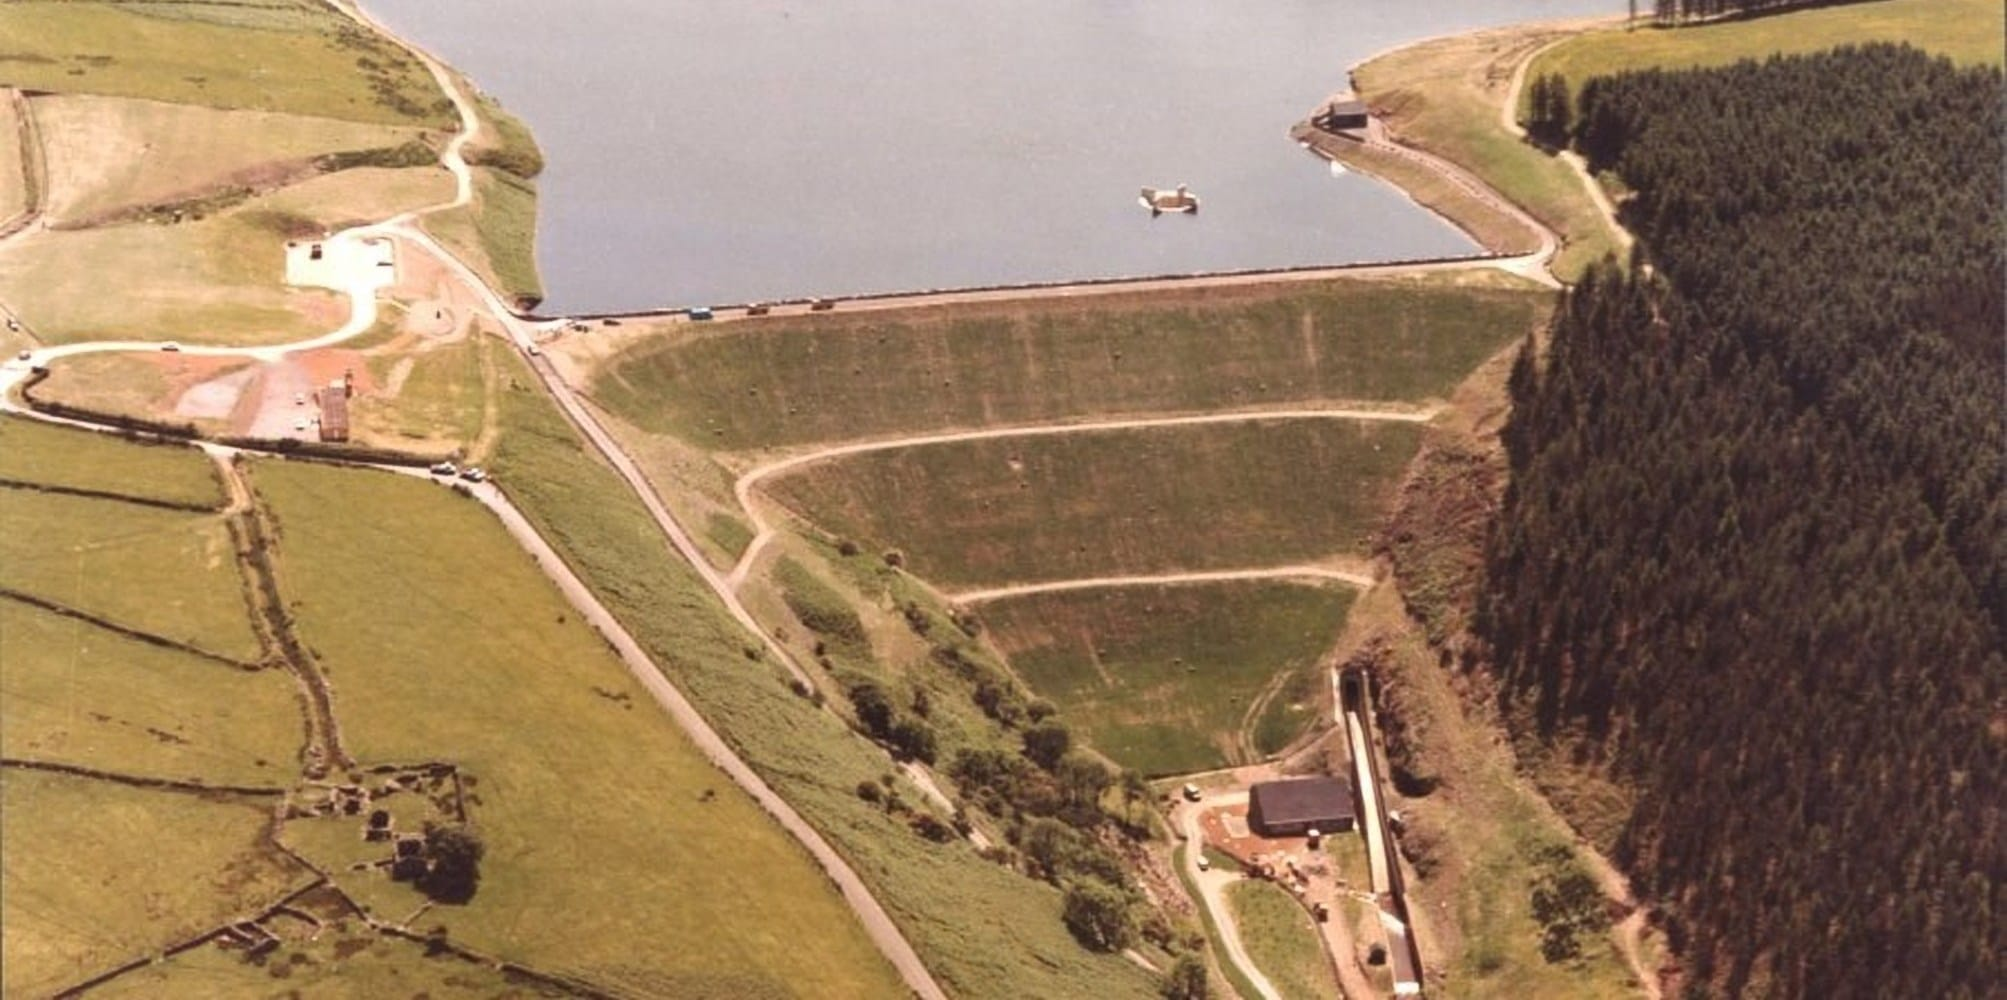 Case Study: Sulby Dam, United Kingdom